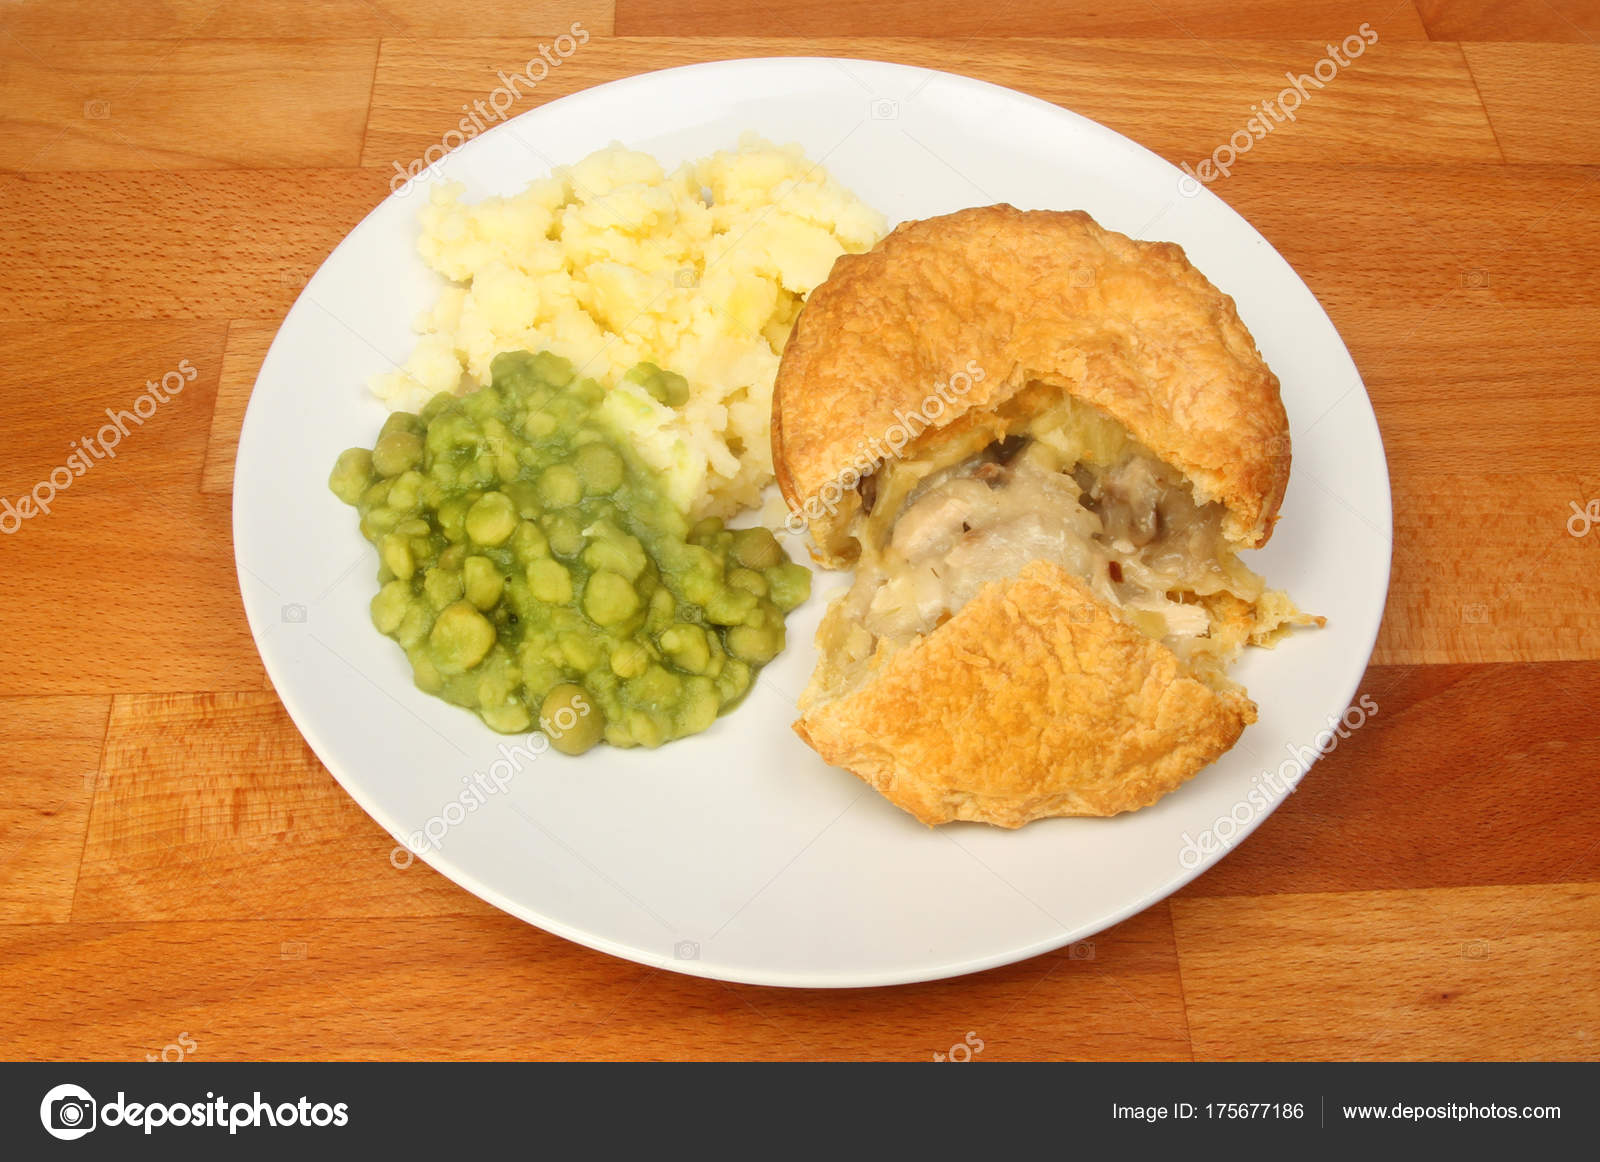 Chicken and mushroom pie with mashed potato and mushy peas on a plate on a wooden tabletop \u2014 Photo by griffin024 & Chicken pie with vegetables \u2014 Stock Photo © griffin024 #175677186